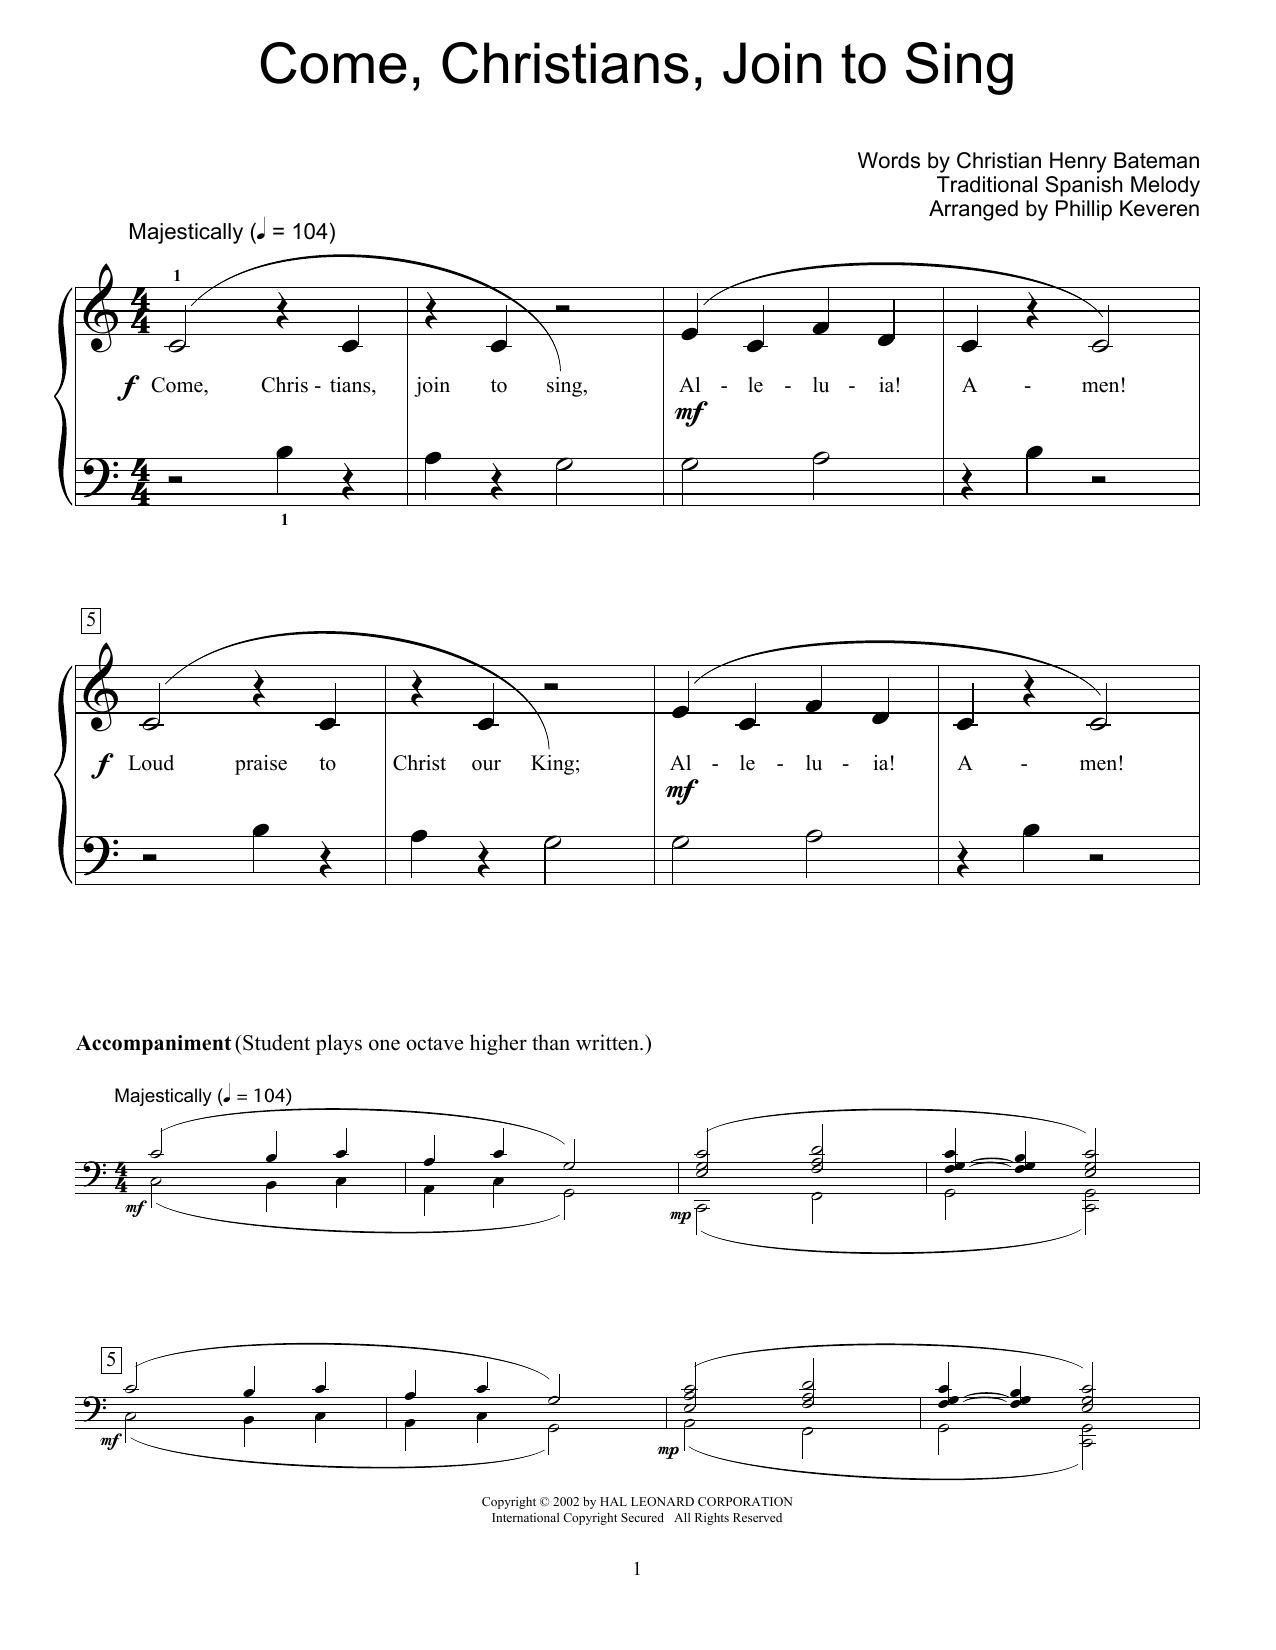 Come, Christians, Join To Sing (Educational Piano)